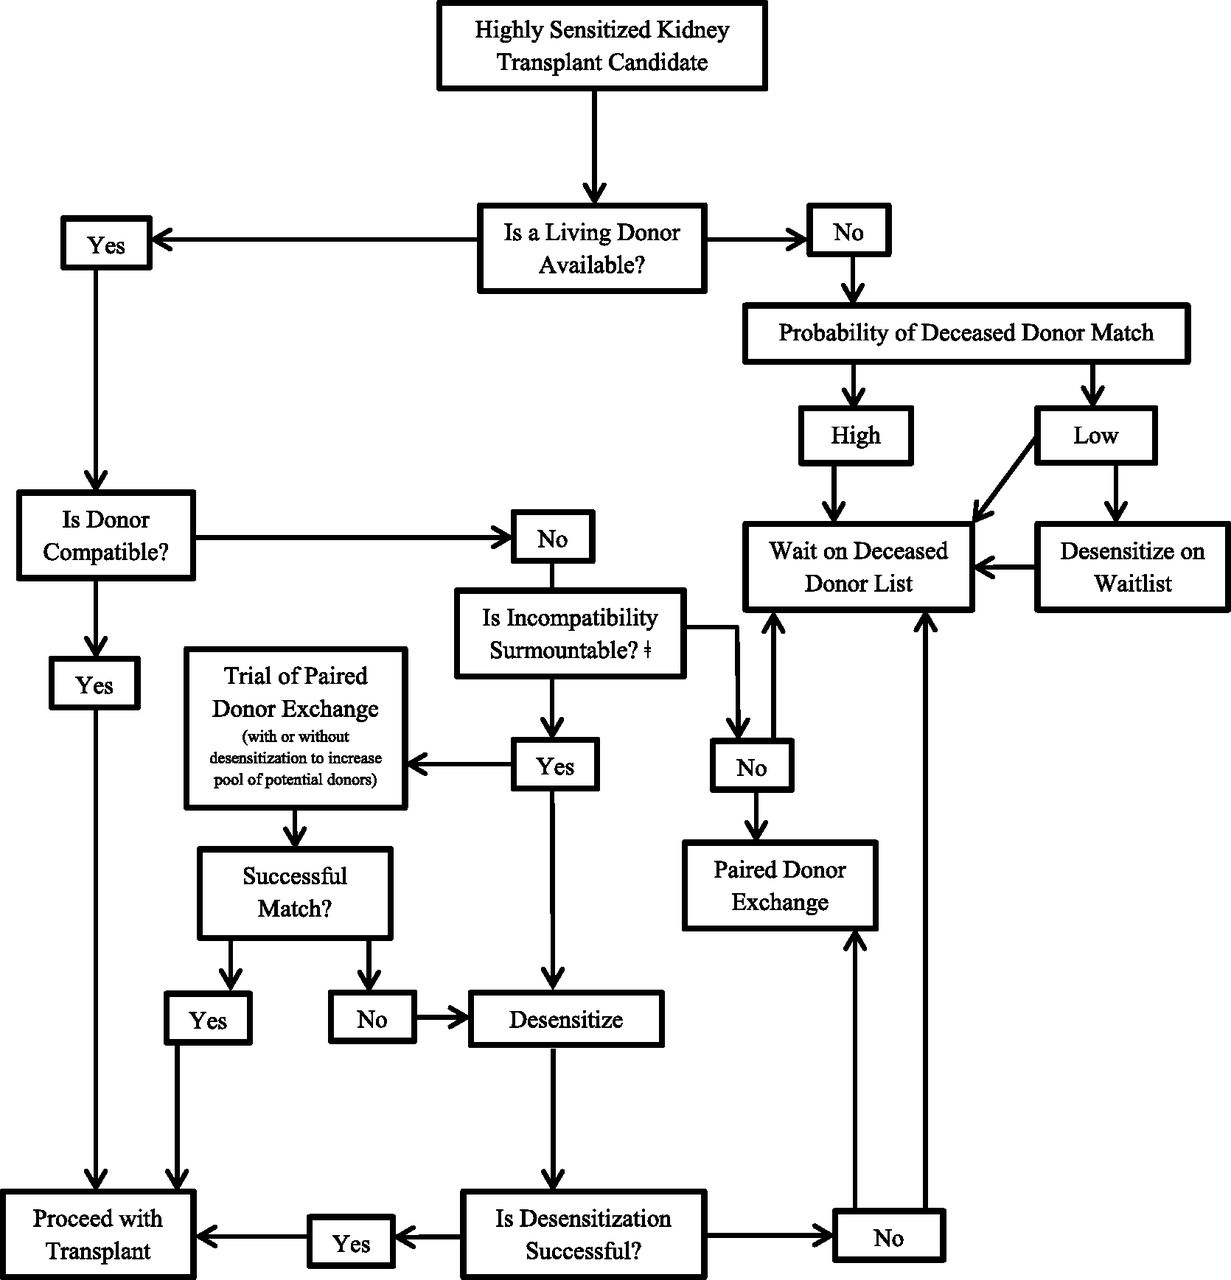 Approach to the Highly Sensitized Kidney Transplant